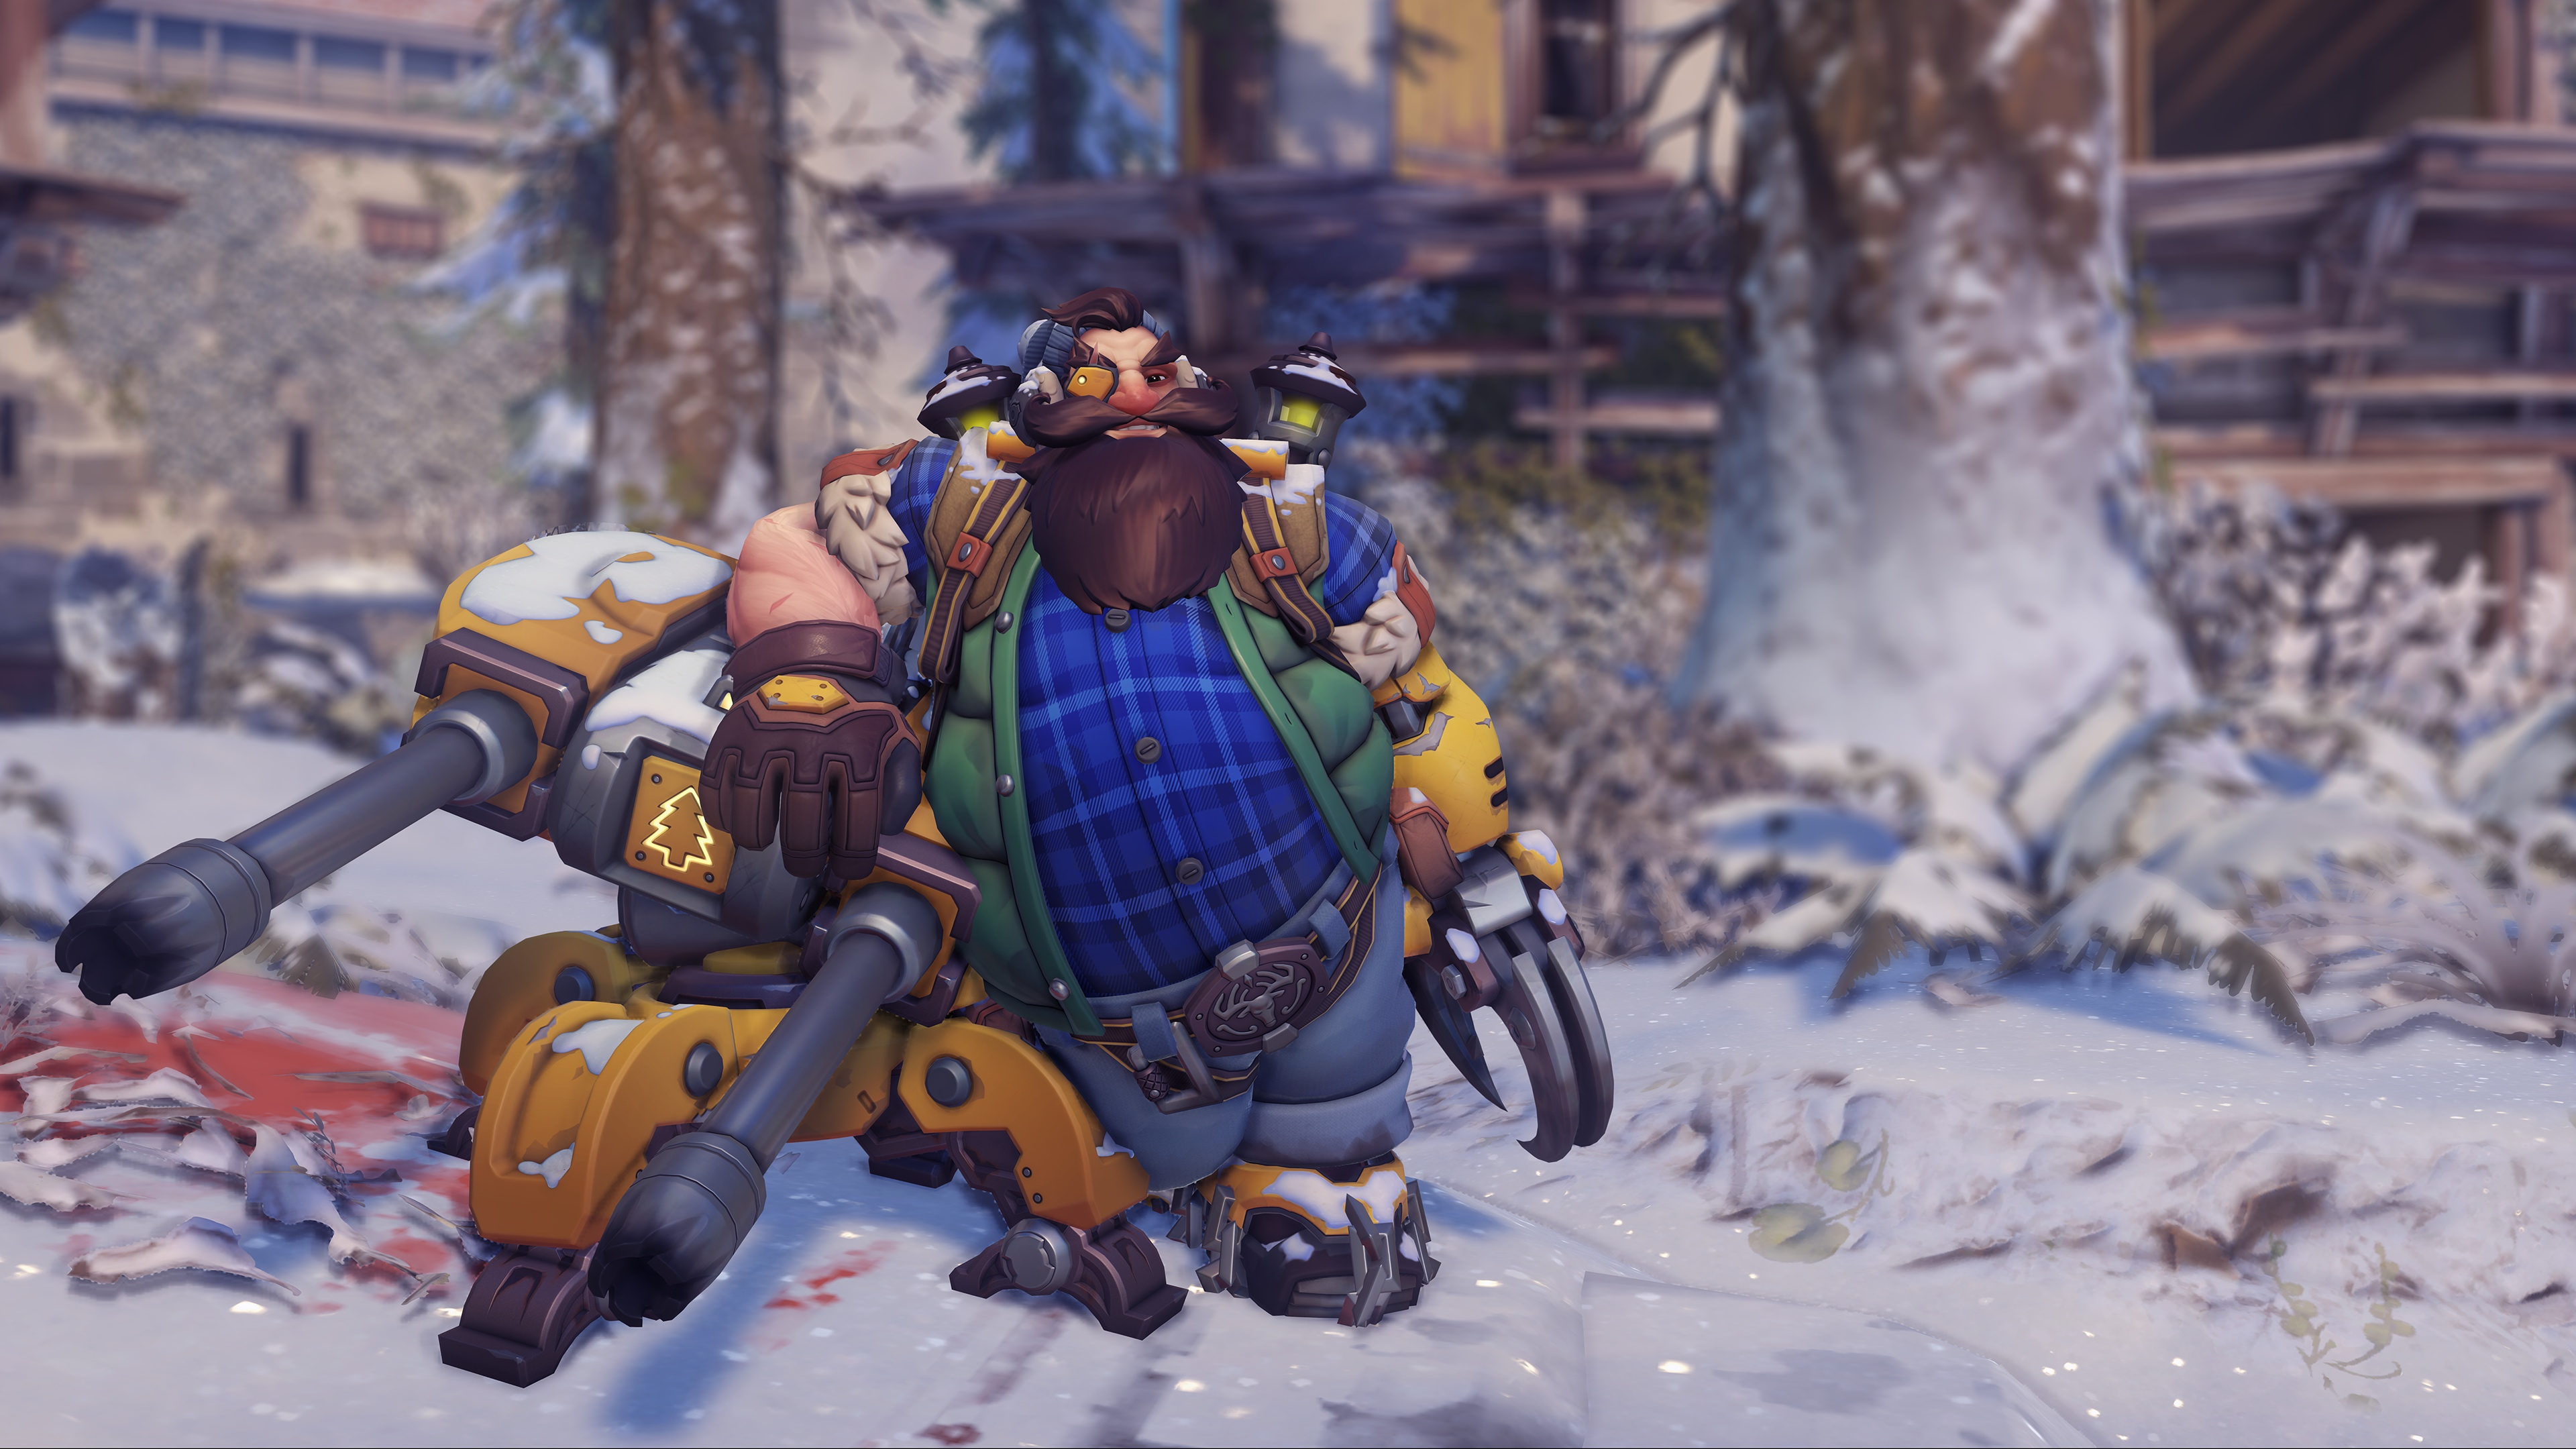 Overwatch Christmas Skins 2021 Overwatch Winter Wonderland 2020 Skins Dates And New Mode Revealed Polygon